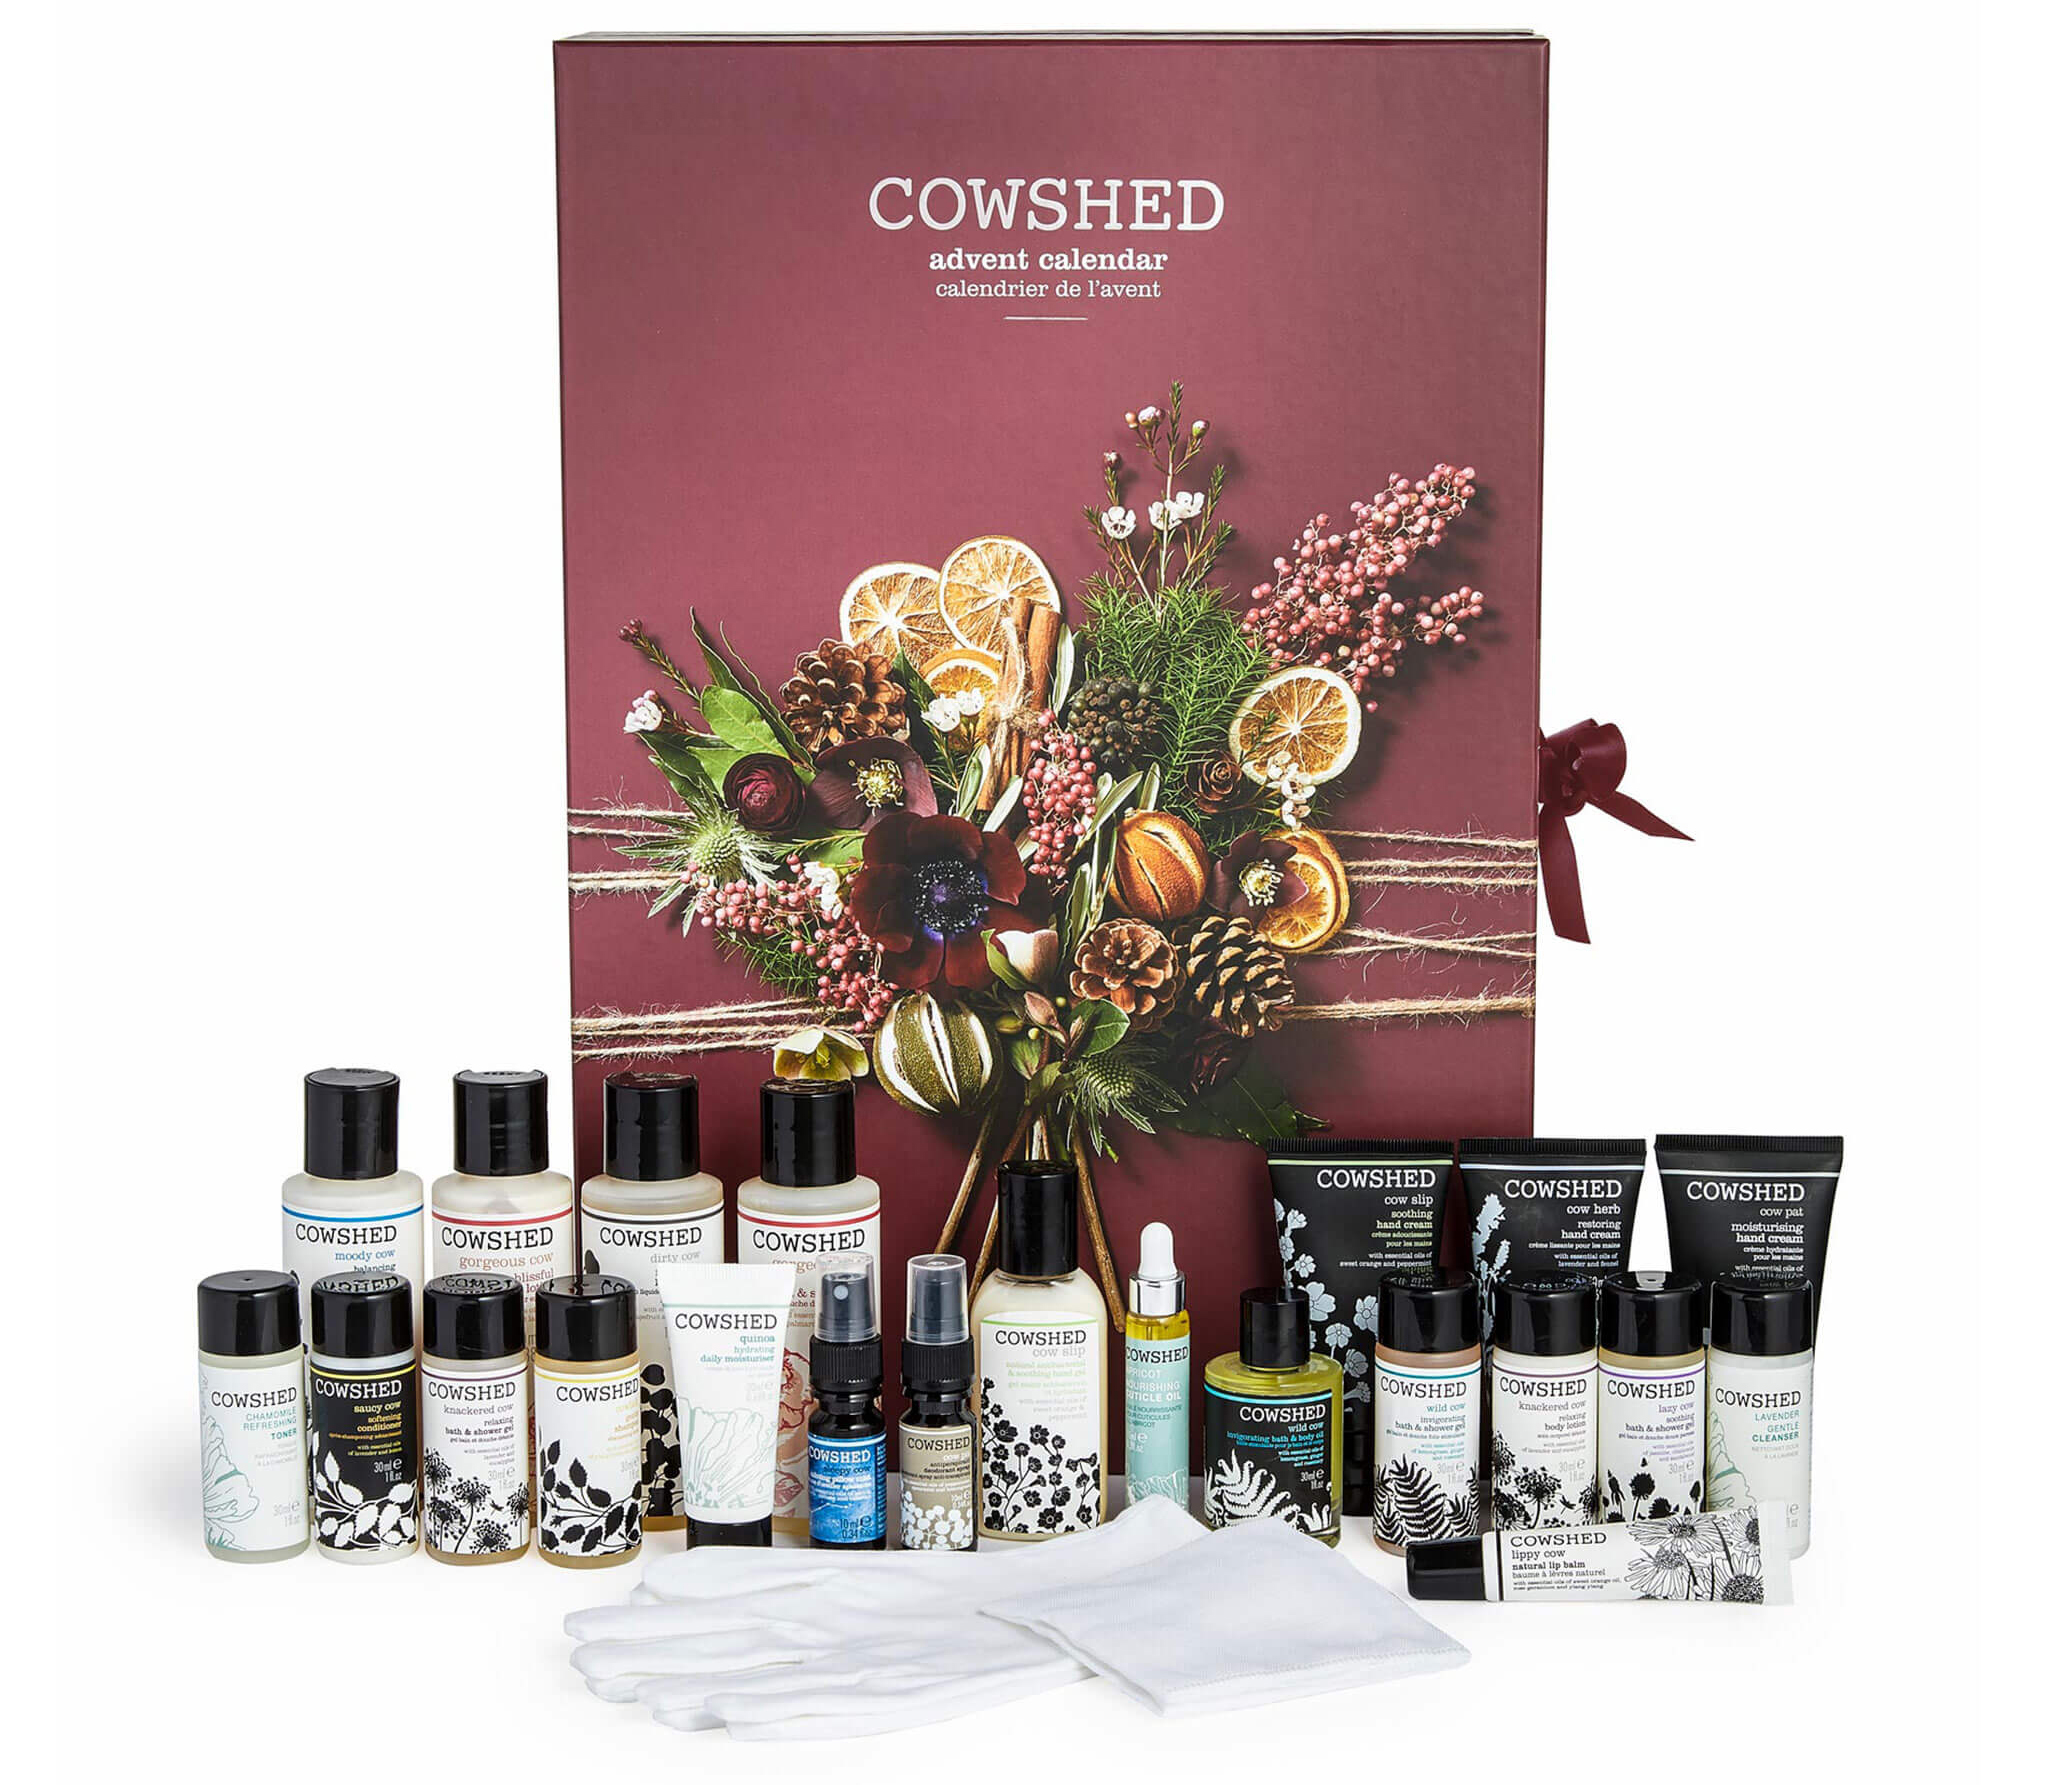 Enjoy some 'me time' - Treat yourself to Cowshed's deluxe Advent Calendar for the ultimate beauty indulgence. This particular calendar is filled with 24 beauty essentials, designed to pamper your hands, hair, face and body in preparation for the party season, and to help you unwind afterwards. From the Wild Cow Bath Oil to the Soothing Cow Body Lotion, each door provides a miniature Cowshed product for you to enjoy. It's already out of stock at John Lewis, but you can still buy it here for £90.